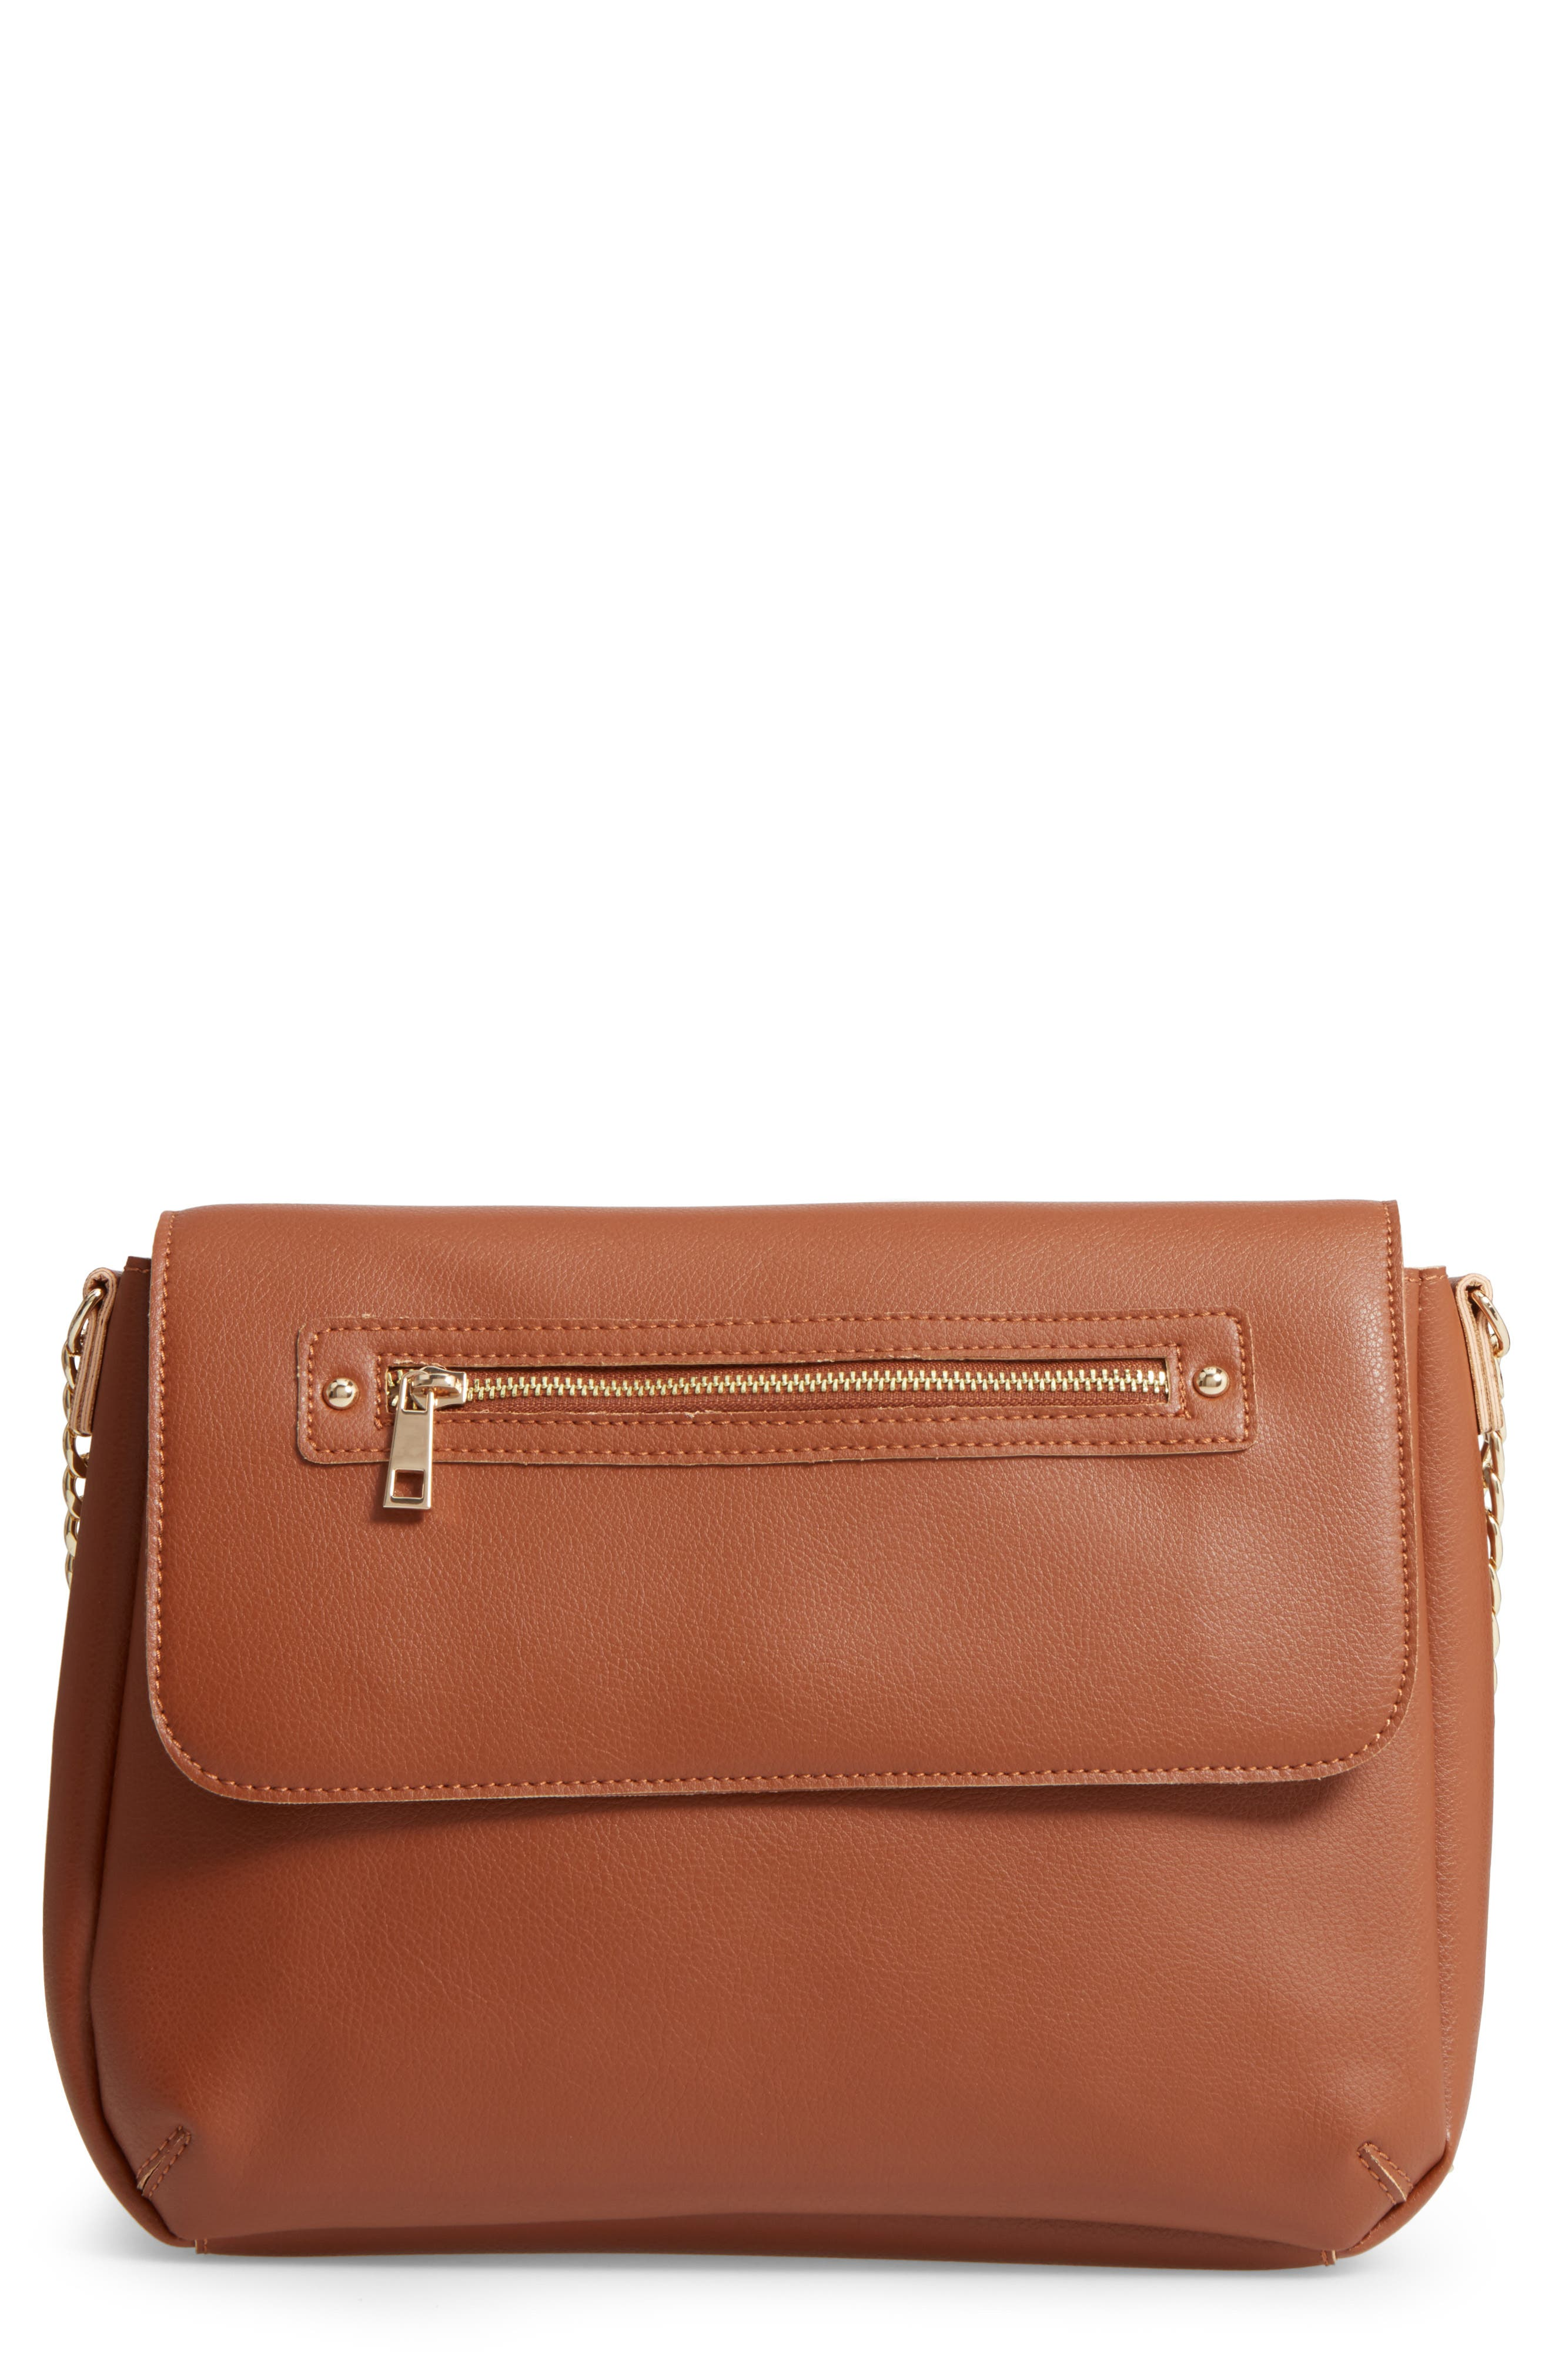 BP. Faux Leather Flap Crossbody Bag